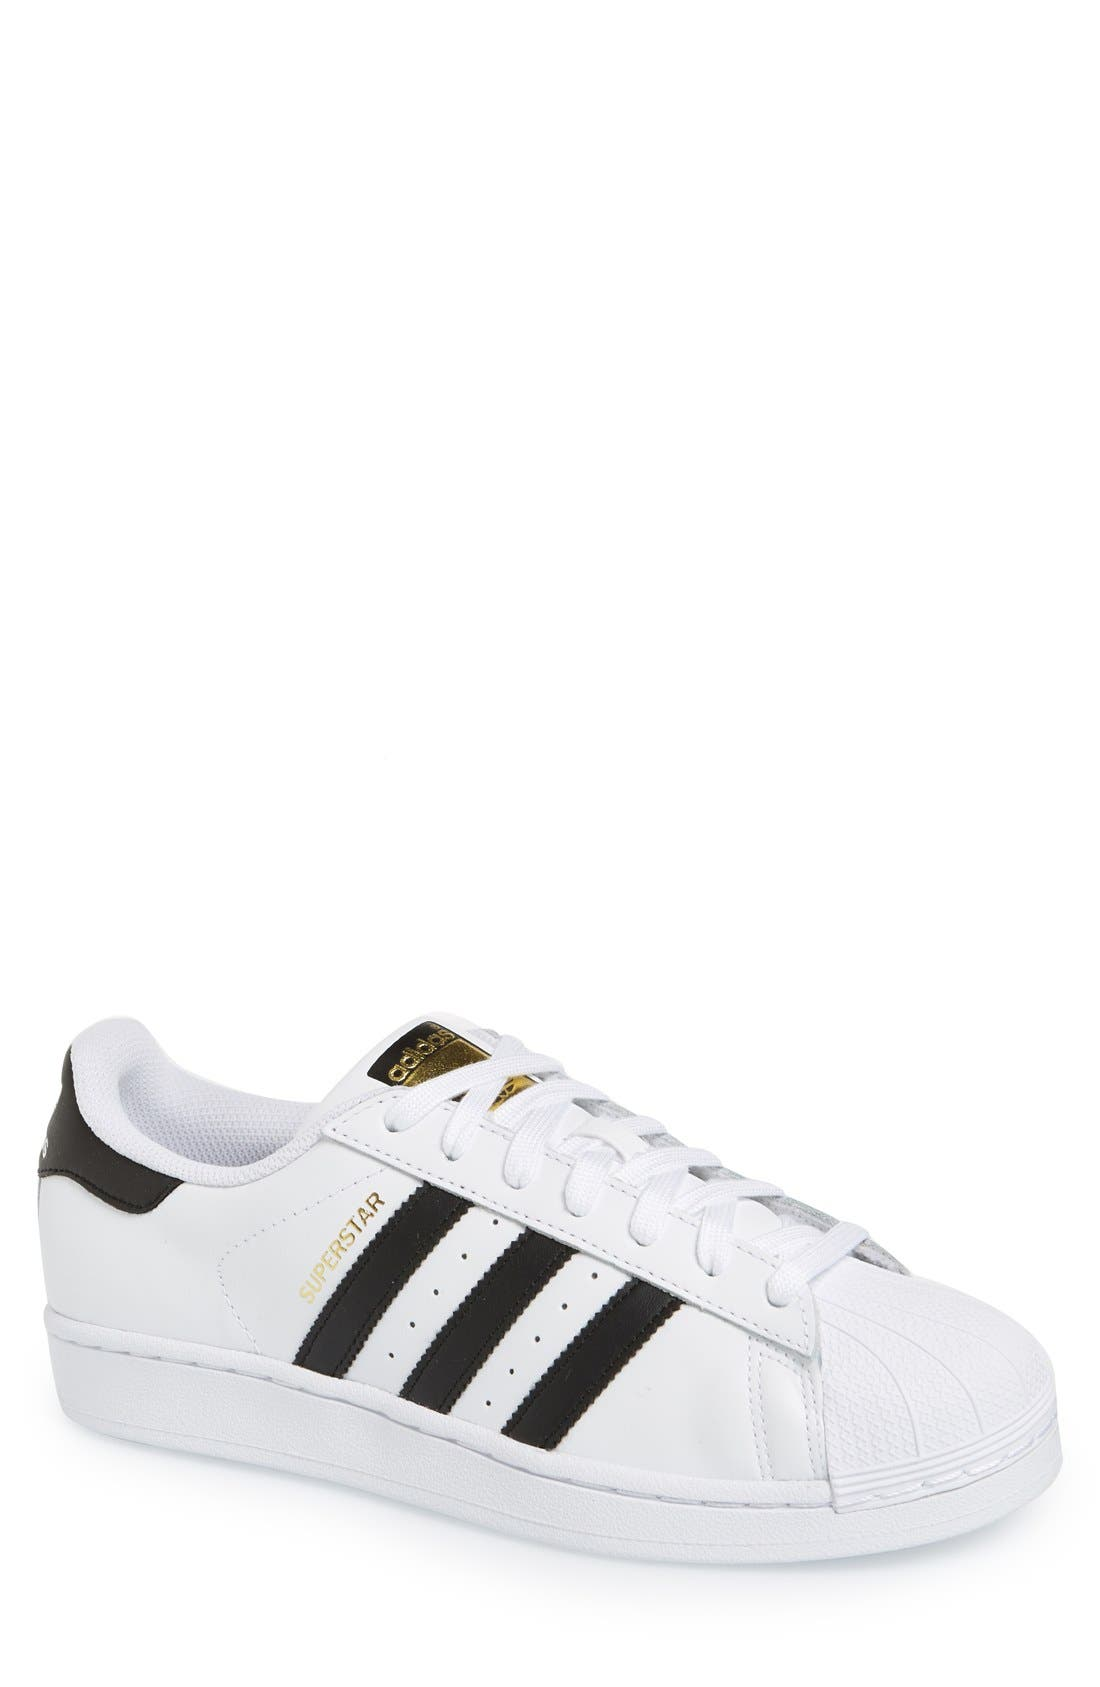 Alternate Image 1 Selected - adidas Superstar Foundation Sneaker